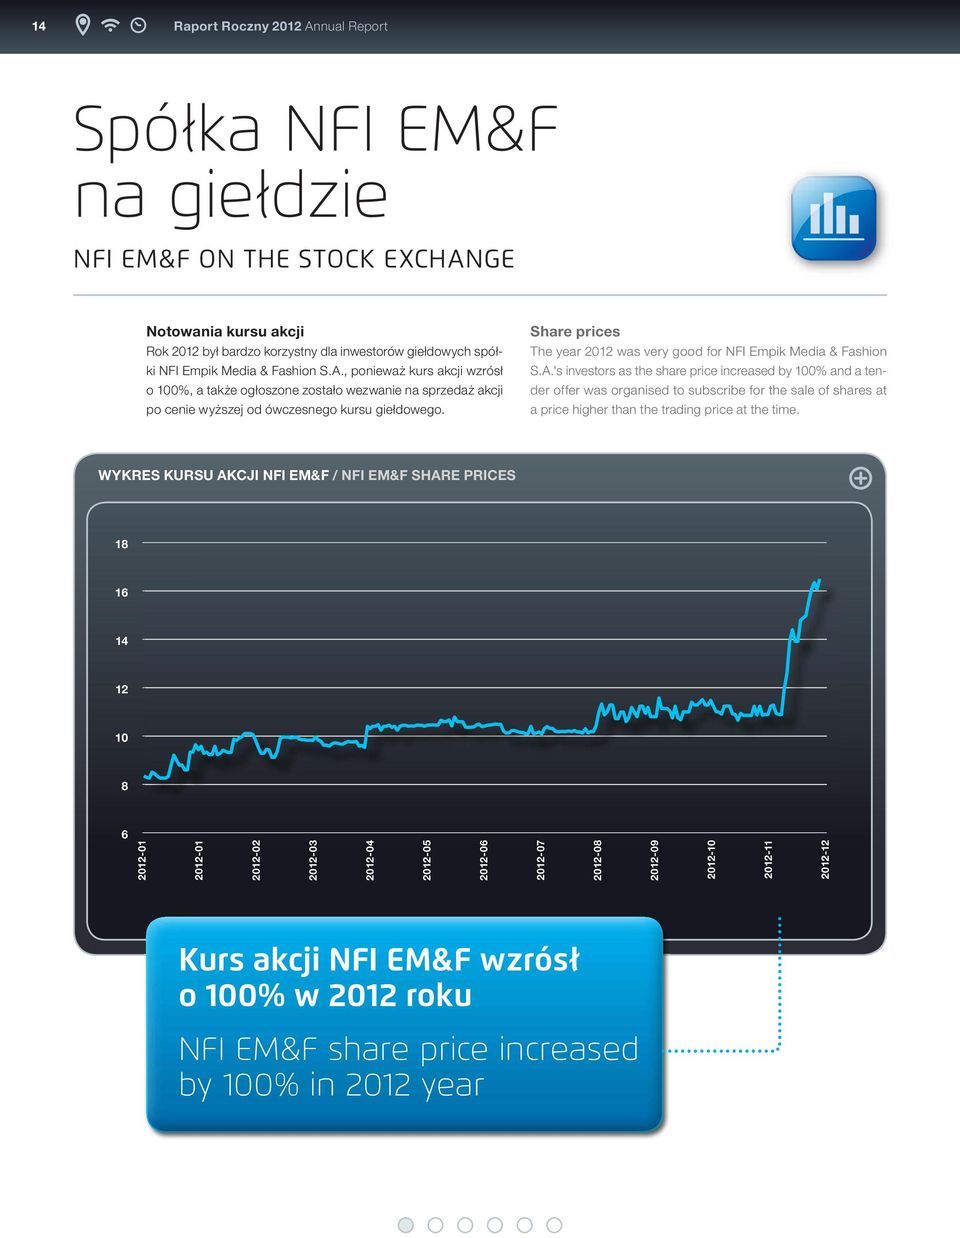 share prices The year 2012 was very good for NFI Empik Media & Fashion S.A.